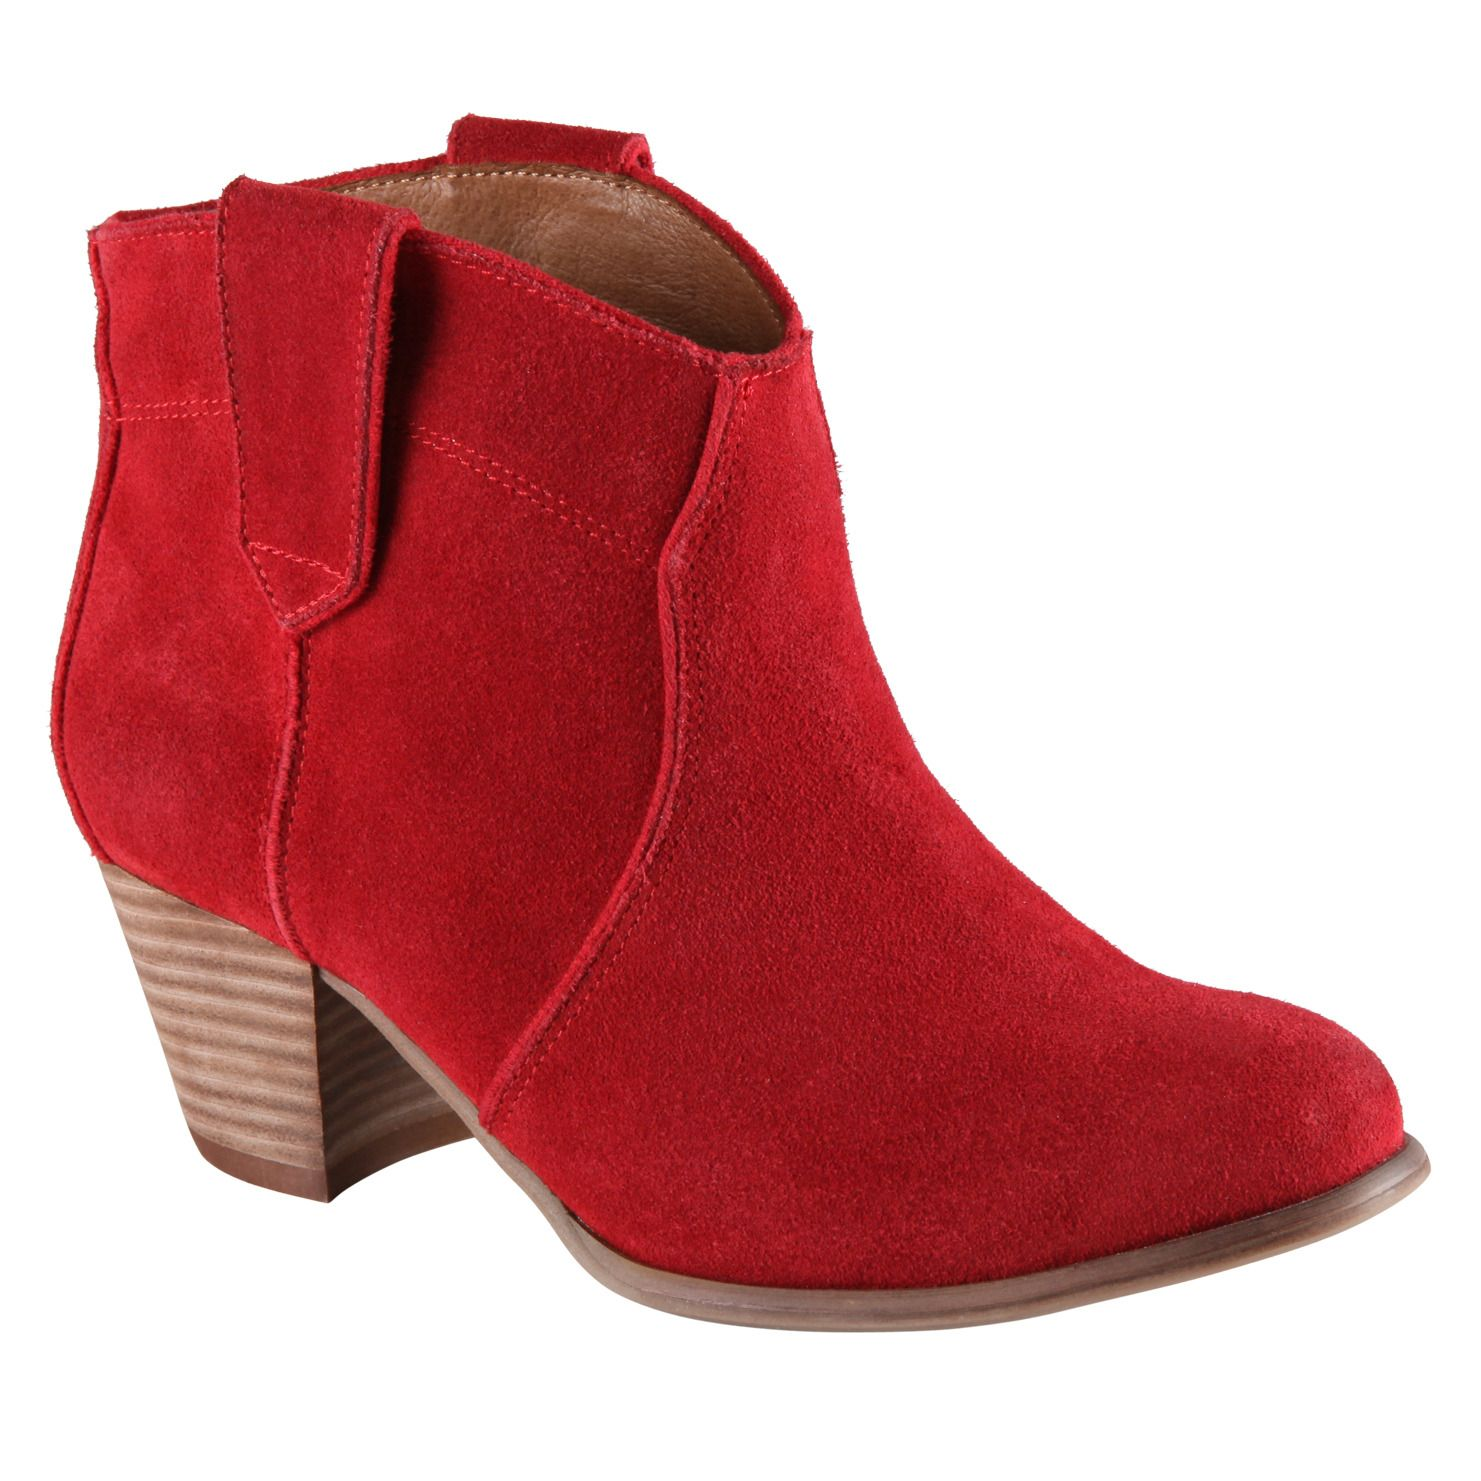 26cf5a855 MANDINA - Clearance's ankle boots women's boots for sale at ALDO Shoes.size  8